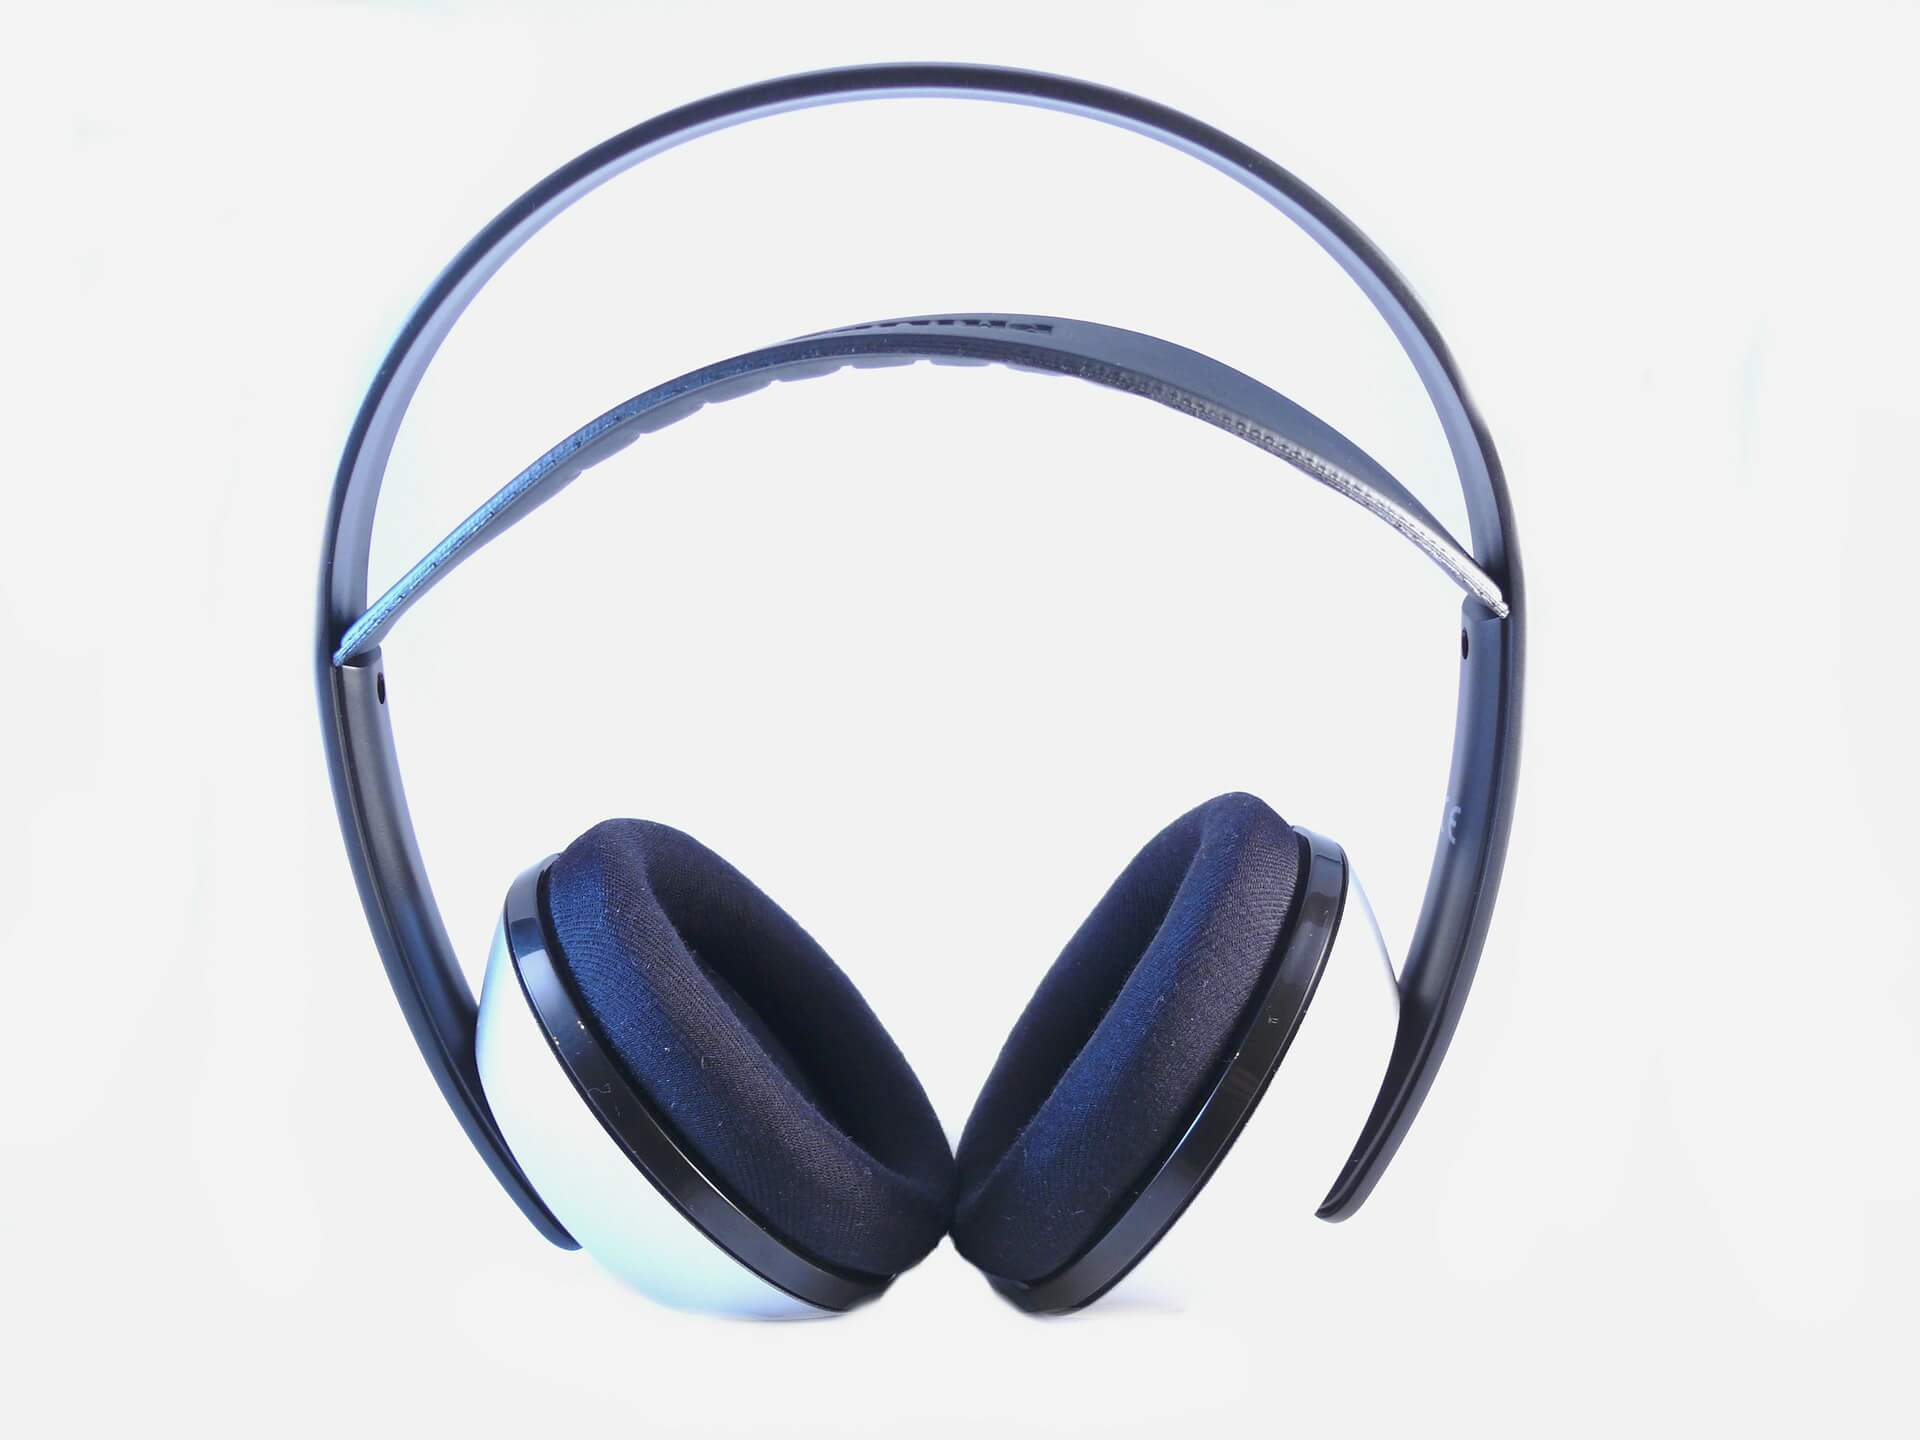 Whether you're a musician or just have some extra money to blow,theMid-level Wireless Headphonesup to $500 can offer lot of feature and audio capability.